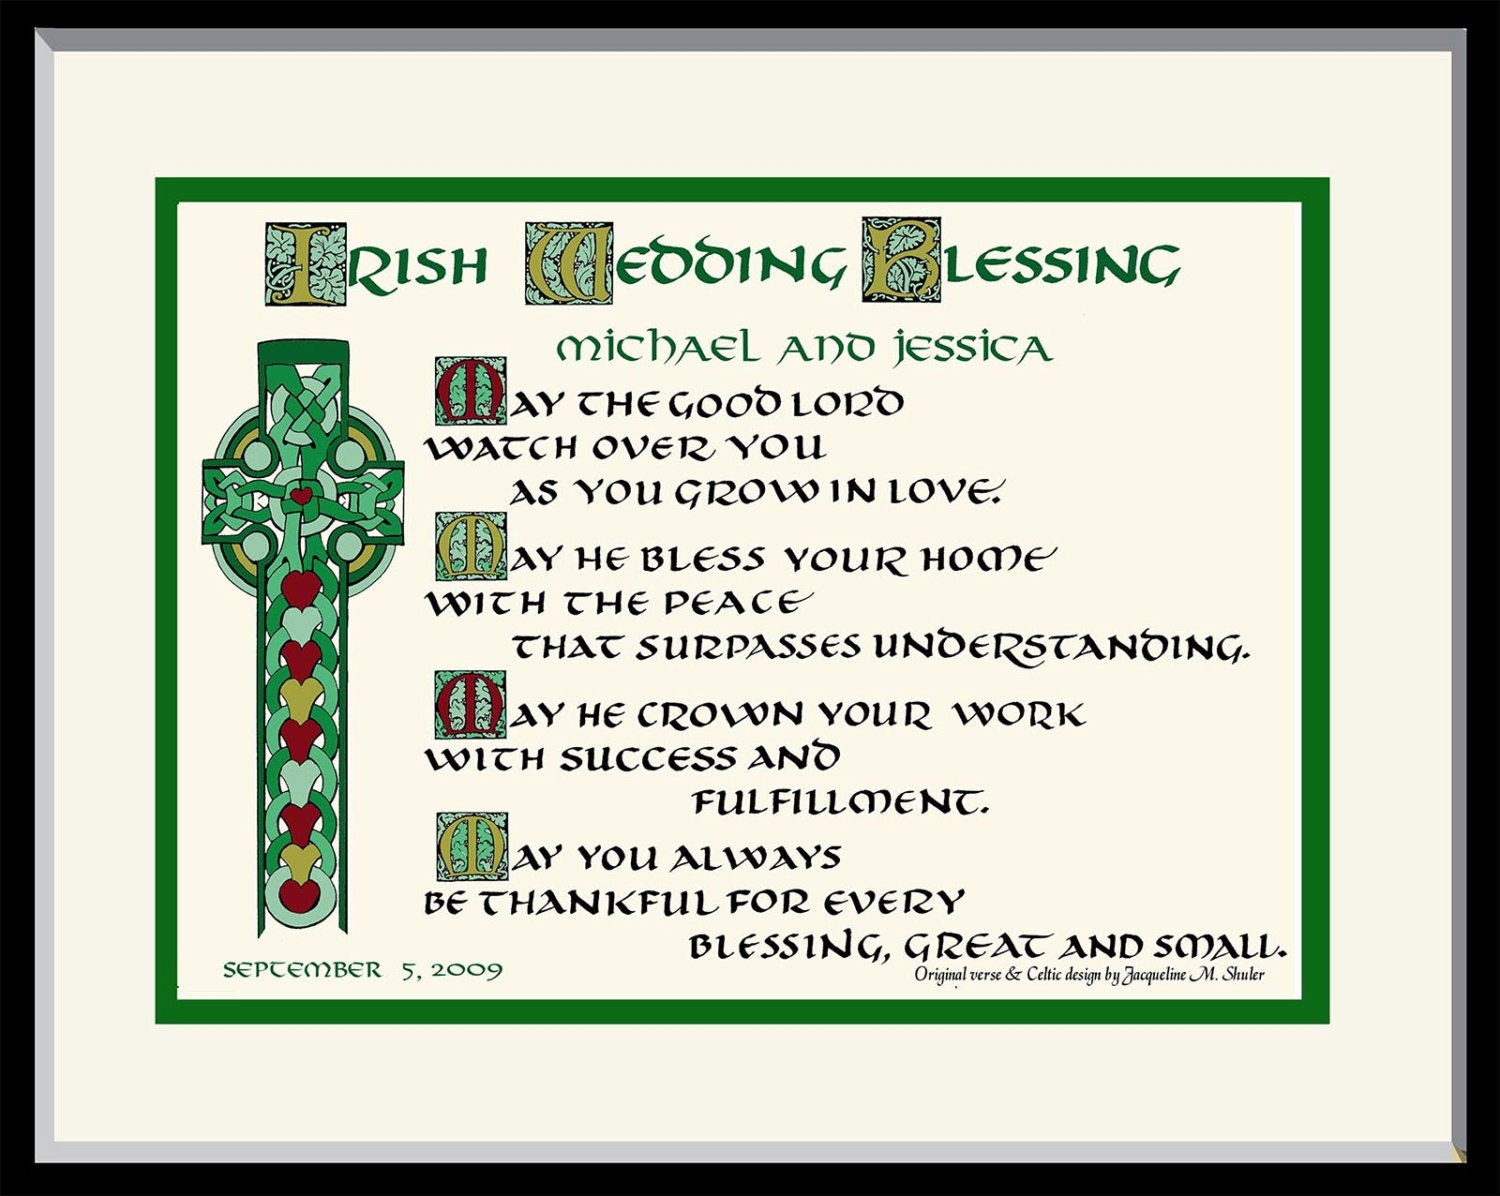 Scottish Wedding Gift For Bride : Personalized Irish Wedding Blessing Gift with Celtic